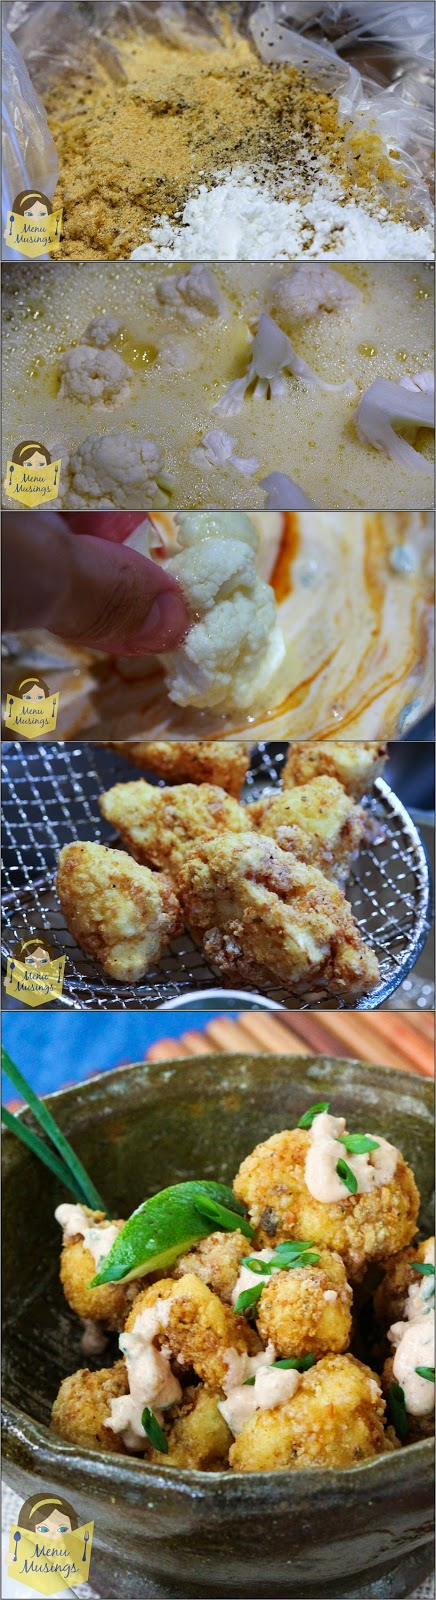 http://menumusings.blogspot.com/2012/07/spicy-fried-cauliflower-bites.html